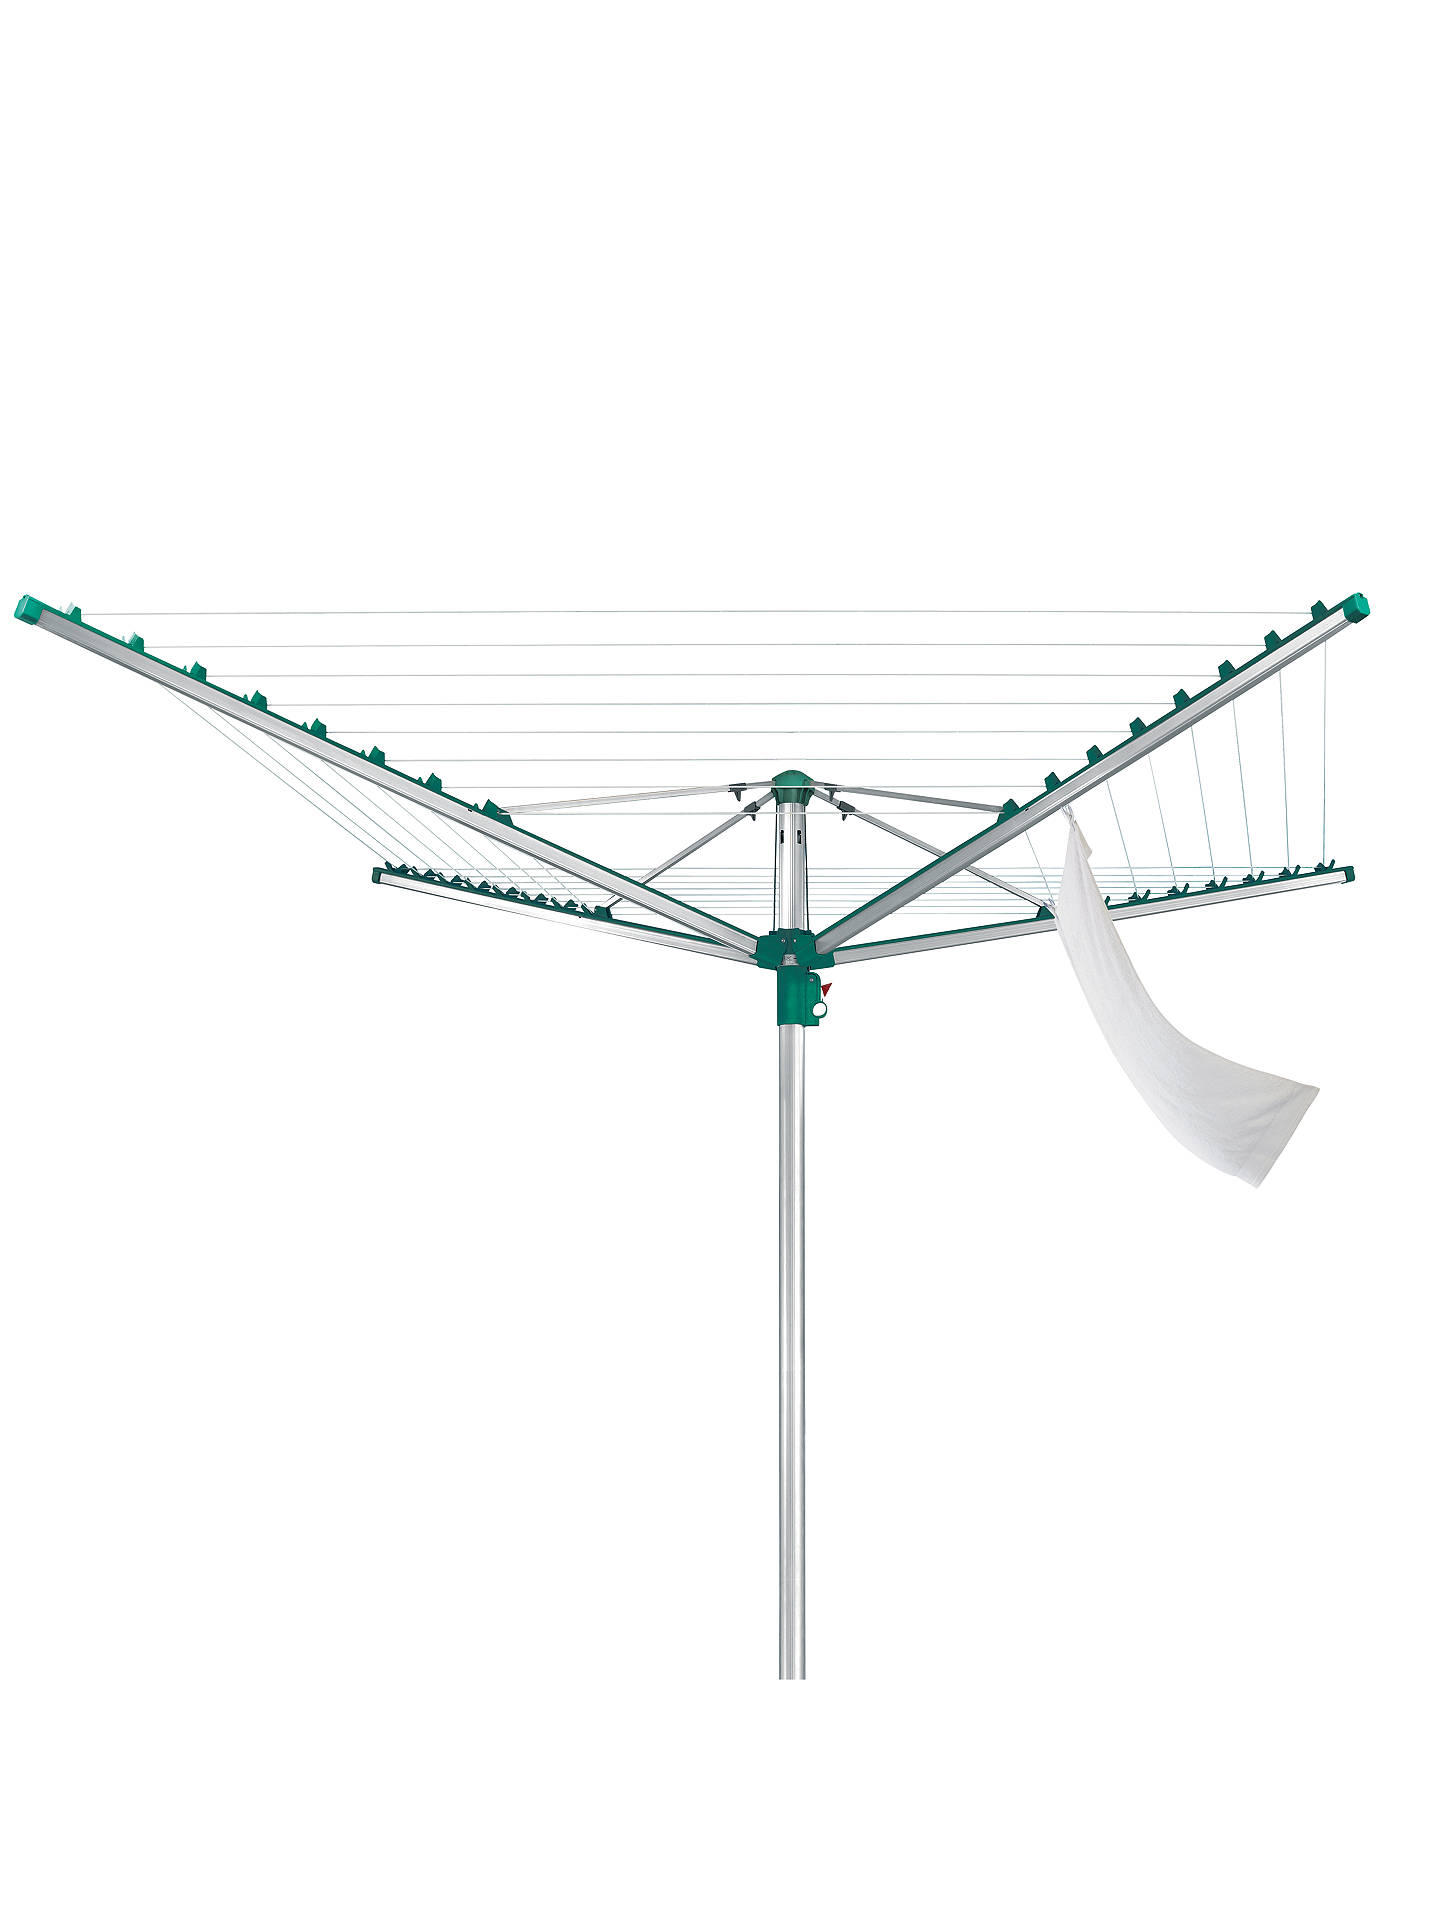 BuyLeifheit Linomatic 400 Comfort Rotary Clothes Outdoor Airer Washing Line, 40m Online at johnlewis.com